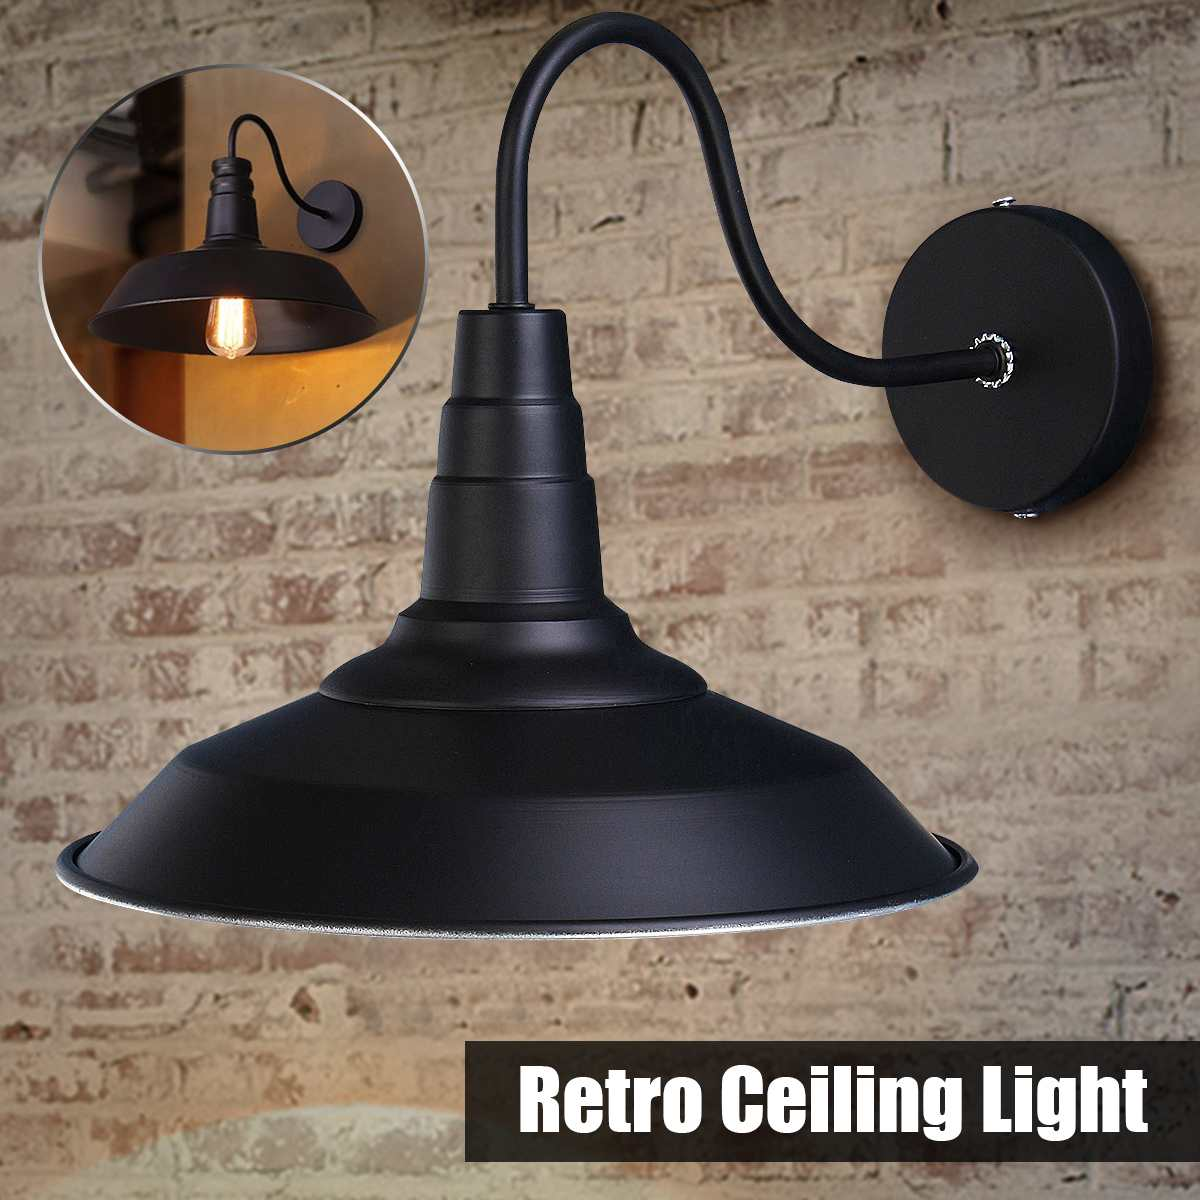 110V/220V Vintage Industrial Wall Lamps Sconce Metal Iron Retro Light Lamp pendant light for Home Kitchen Bar Loft Garden110V/220V Vintage Industrial Wall Lamps Sconce Metal Iron Retro Light Lamp pendant light for Home Kitchen Bar Loft Garden